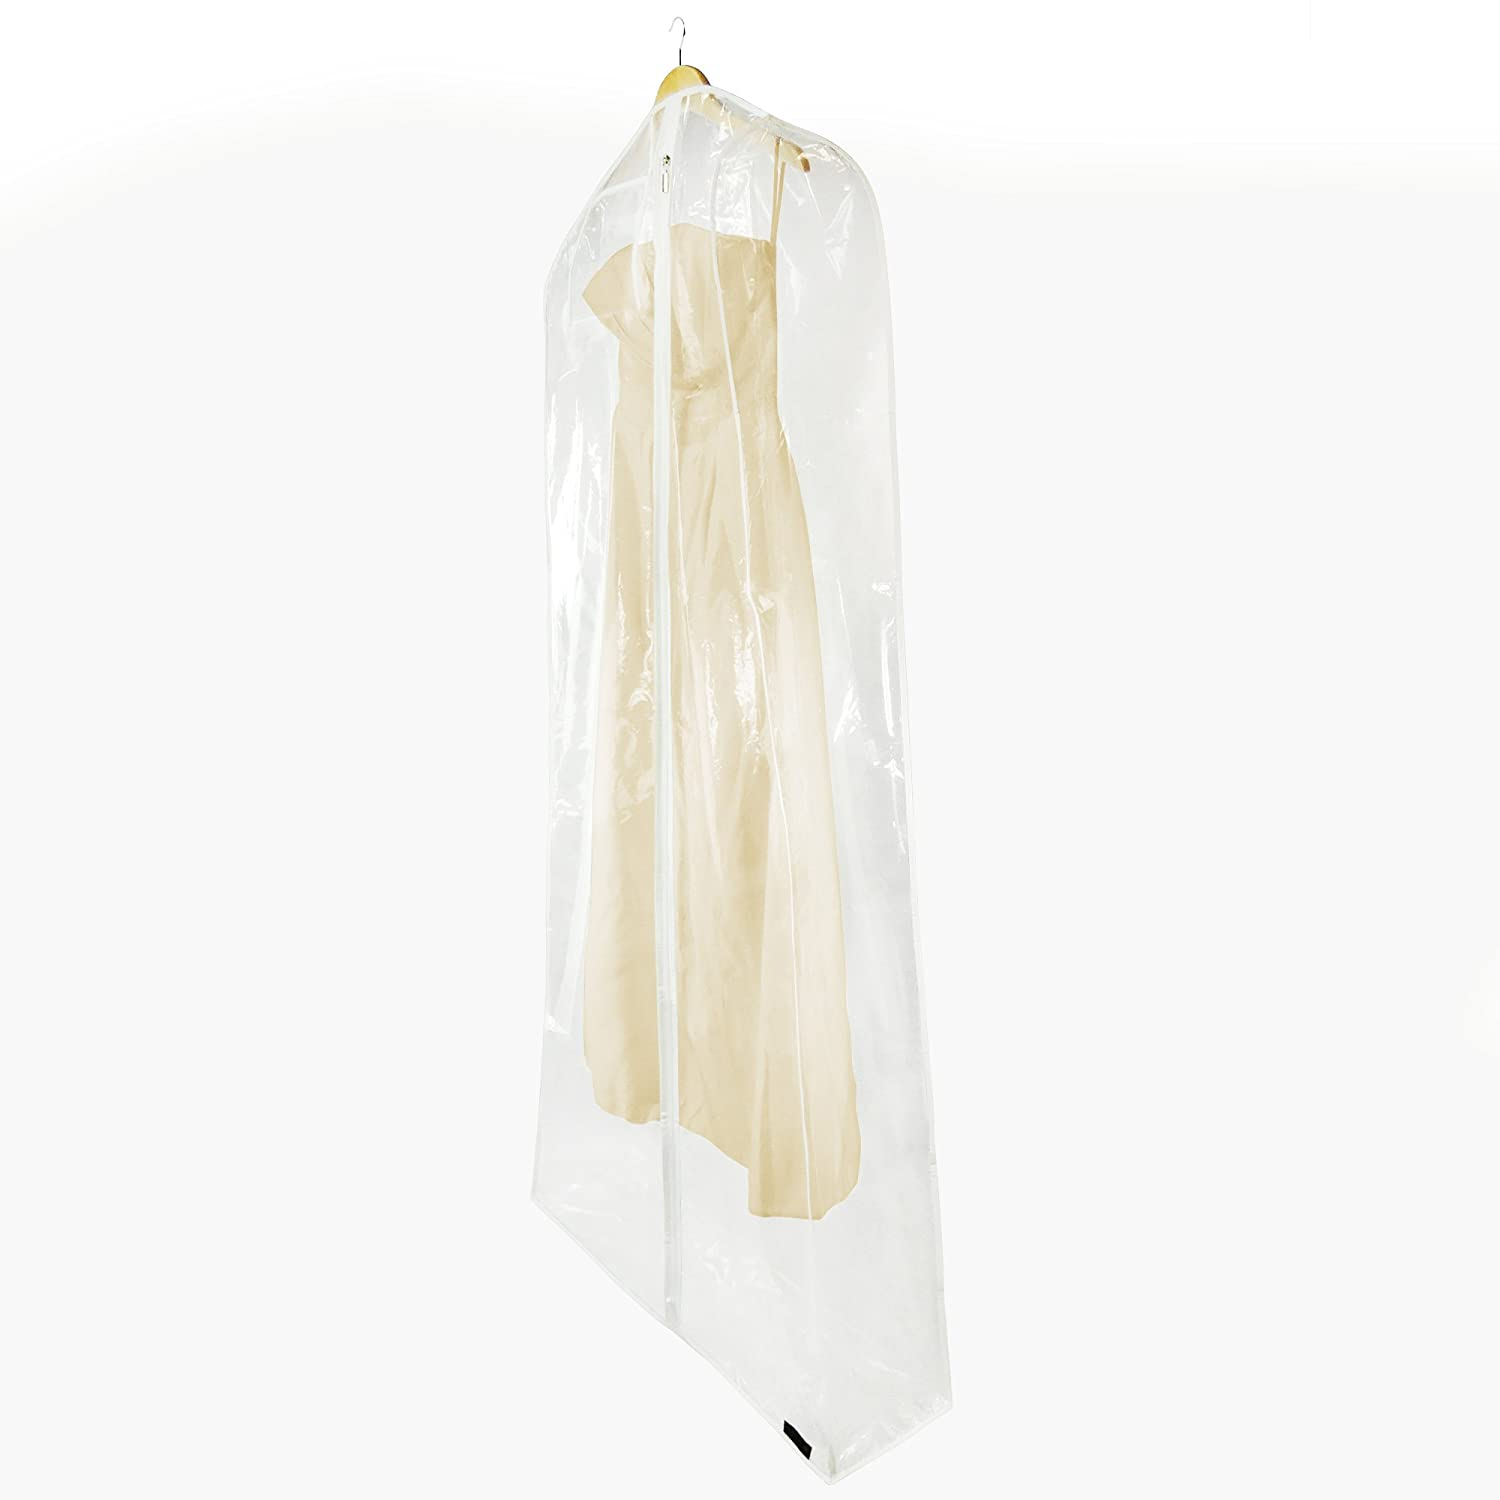 HANGERWORLD 3 Clear 72inch Showerproof Wedding Dress Ball Gown Garment Cover Bags with Extra Wide 10inch Gusset